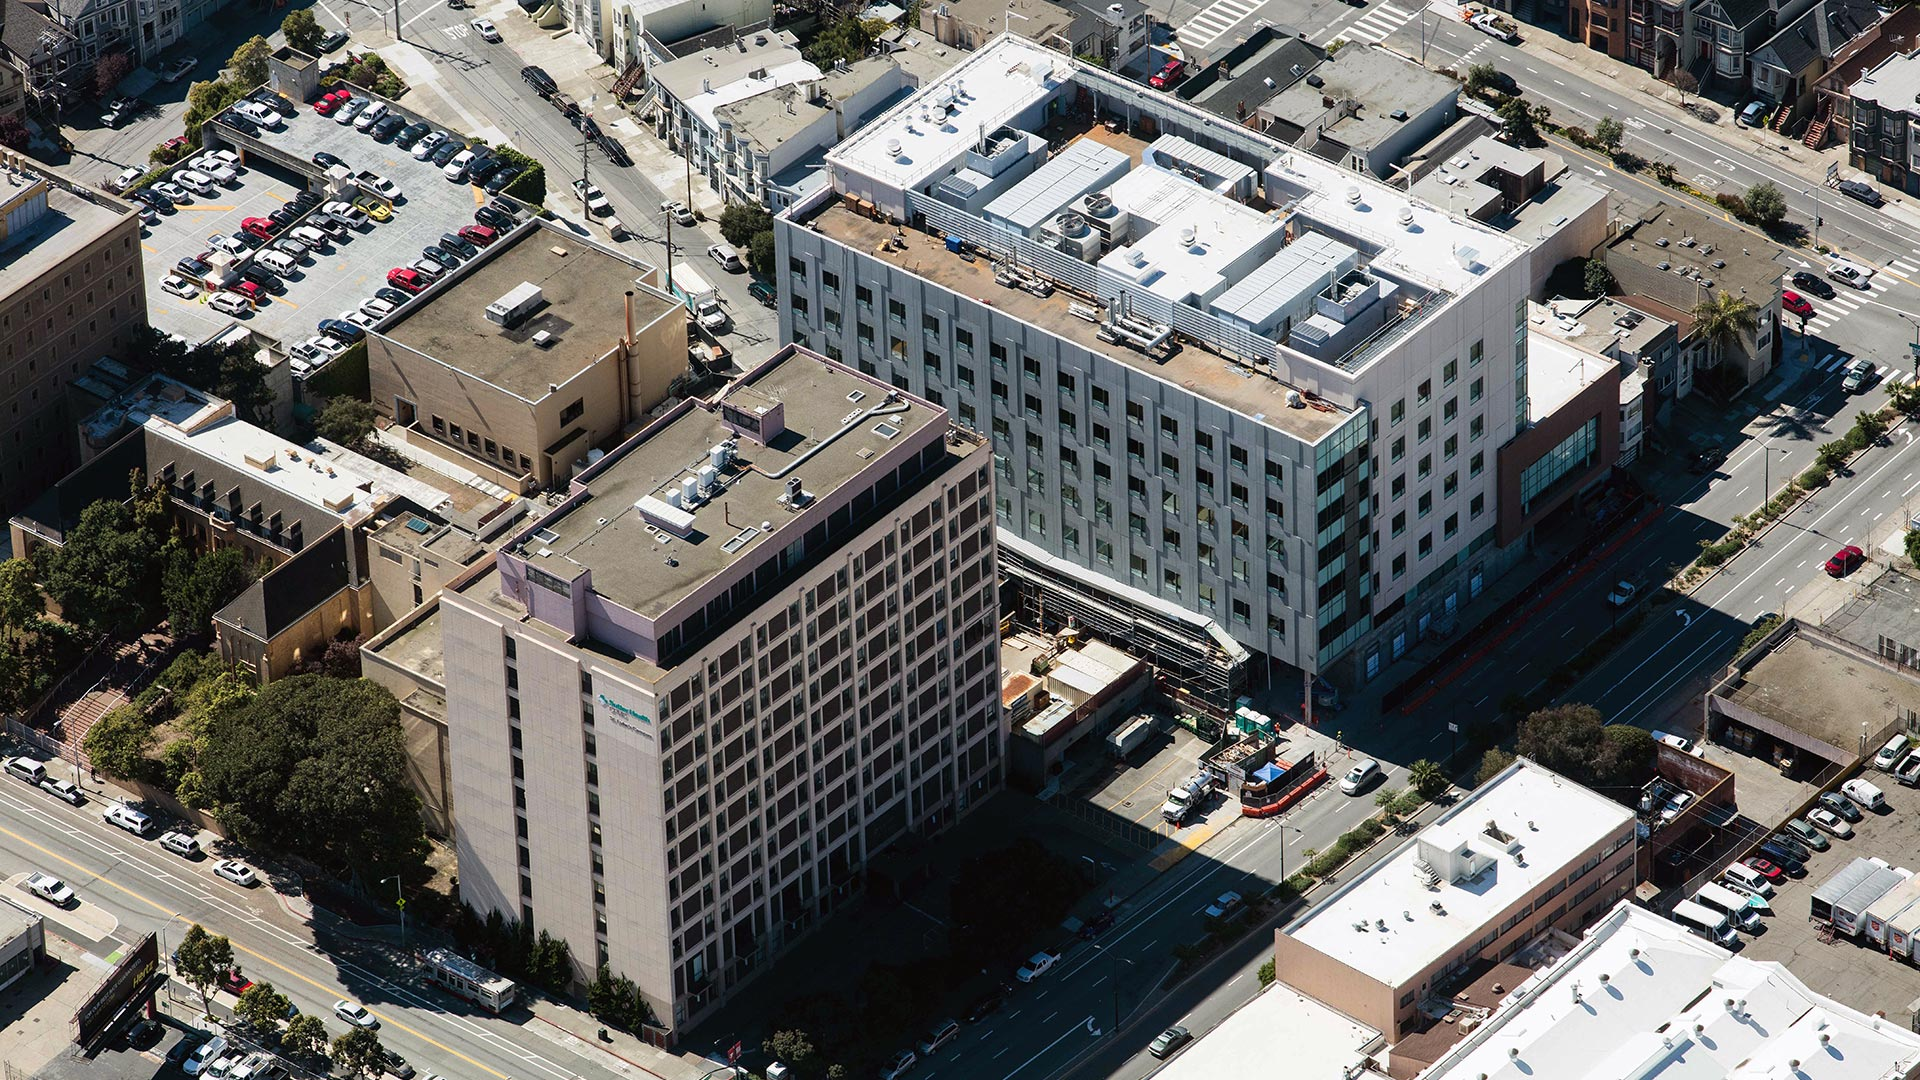 St. Luke's Hospital - San Francisco - long view